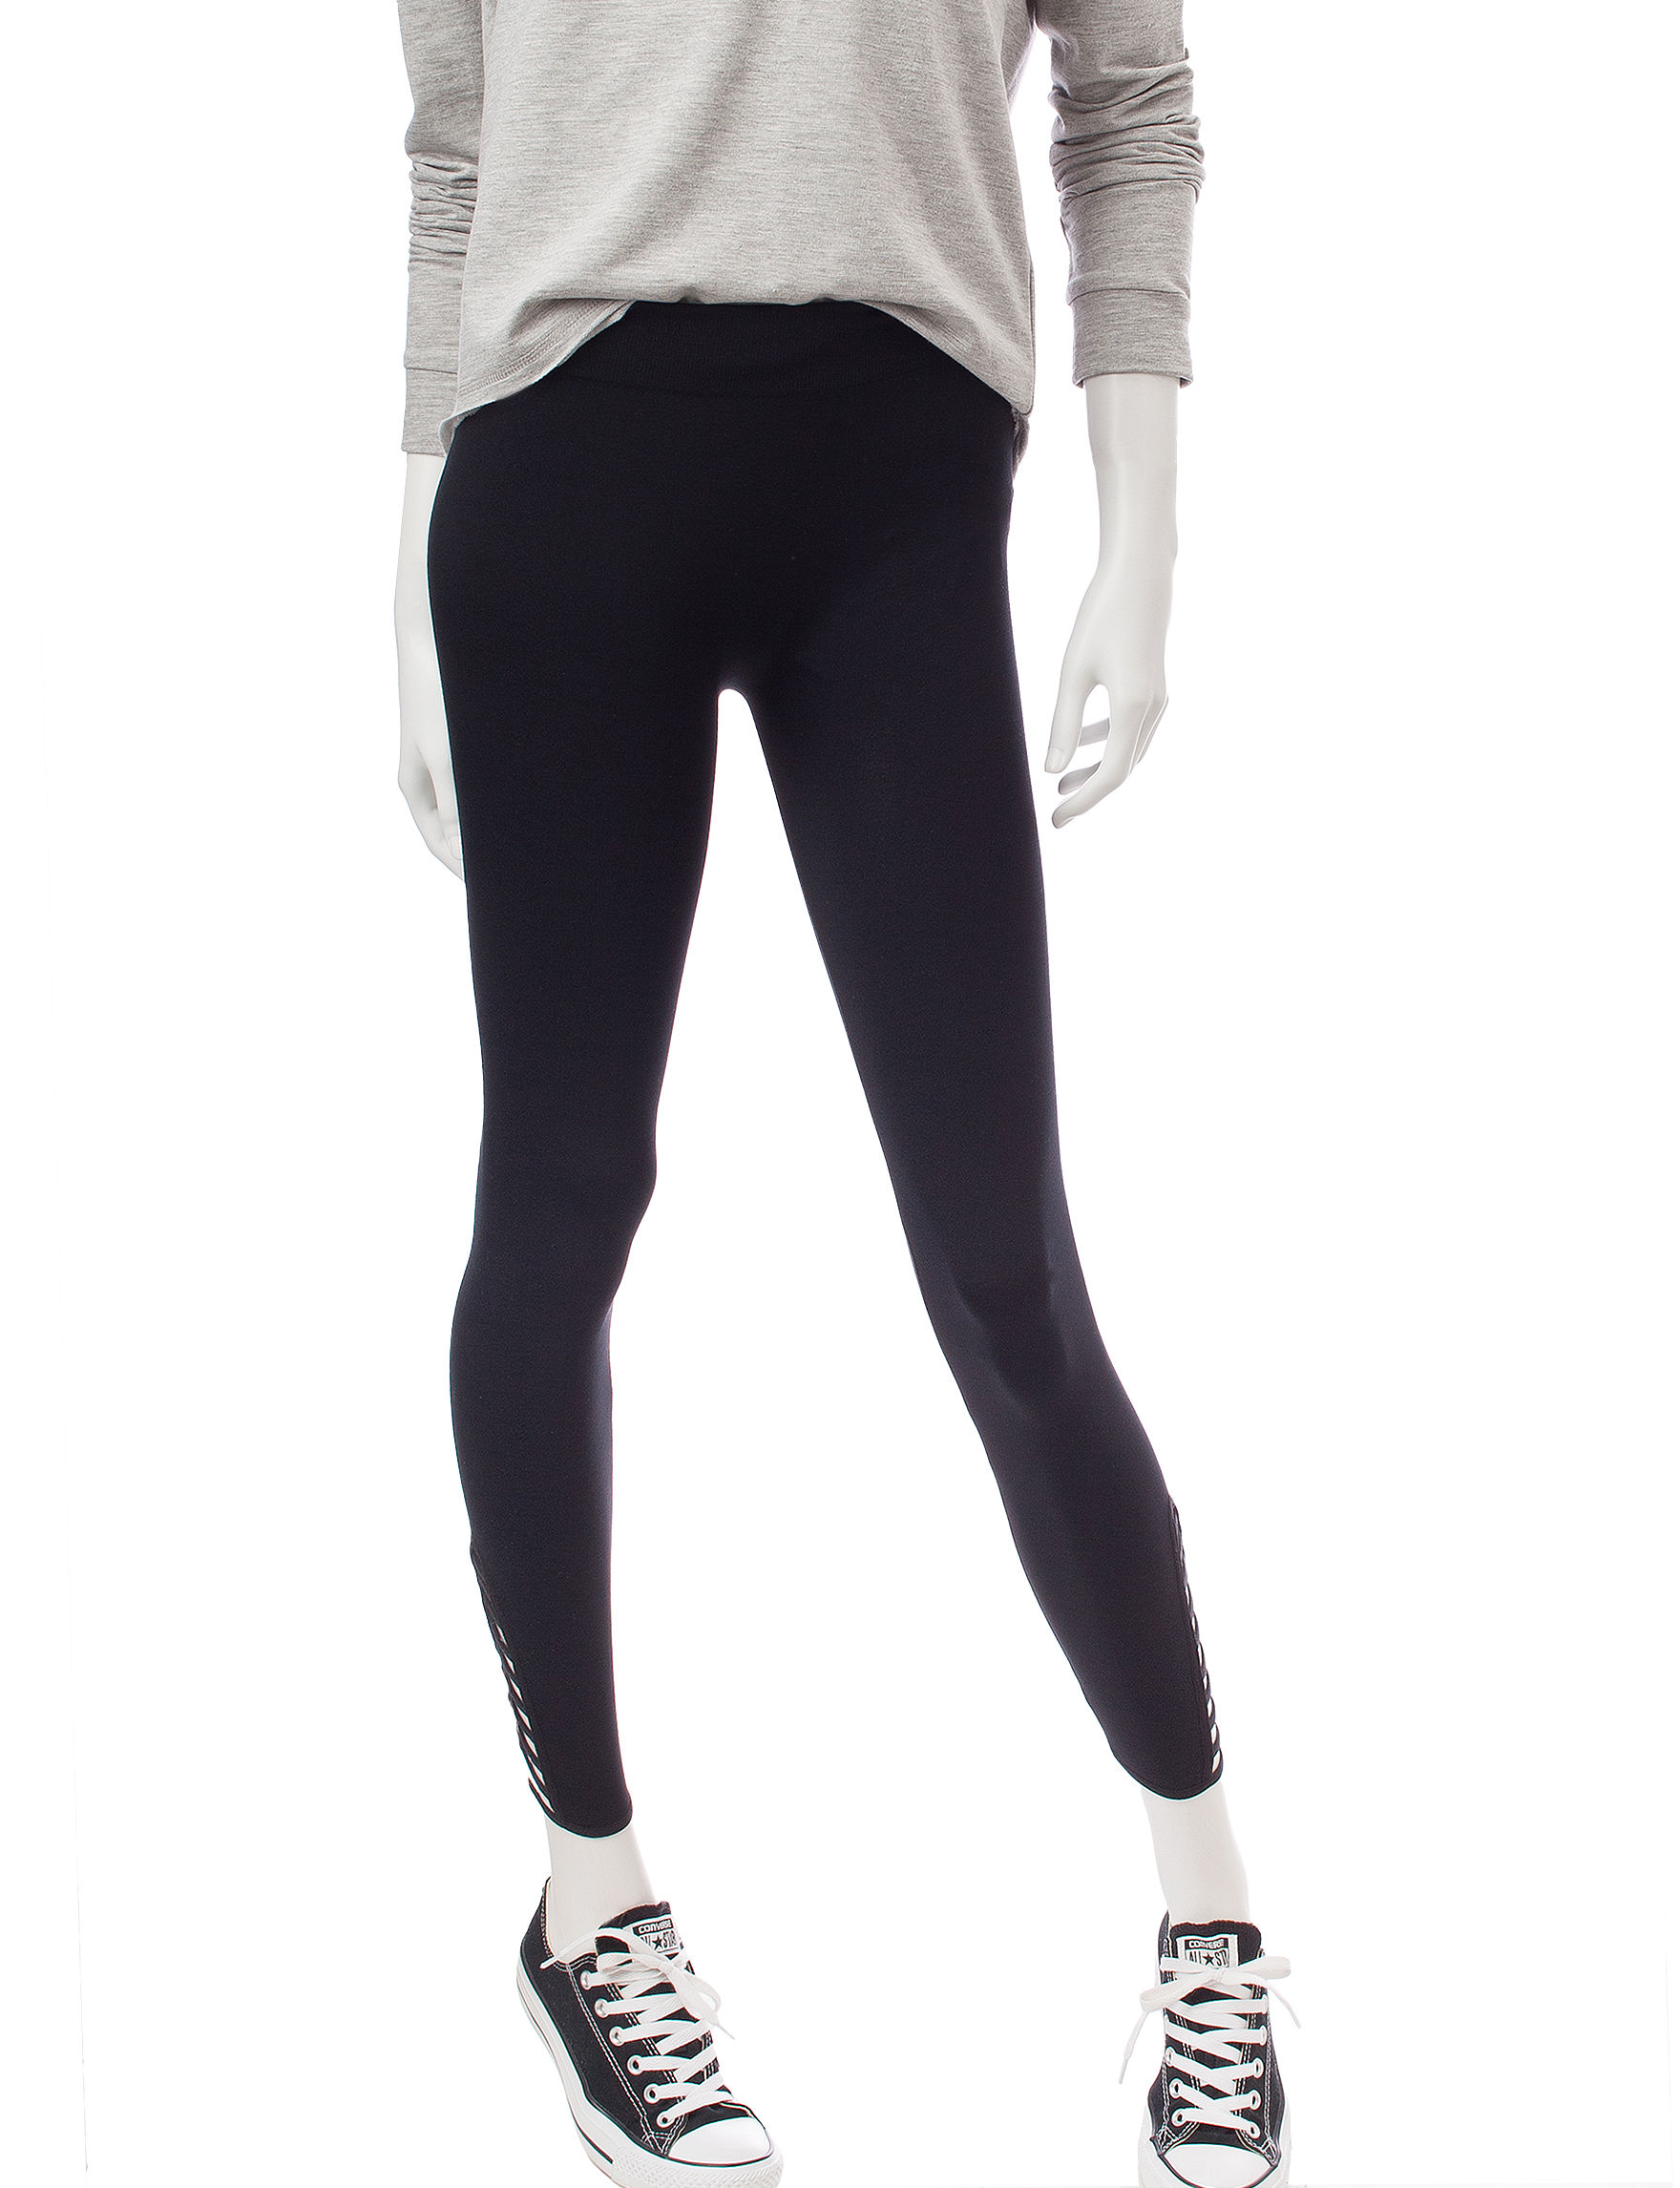 Moral Fiber Black Leggings